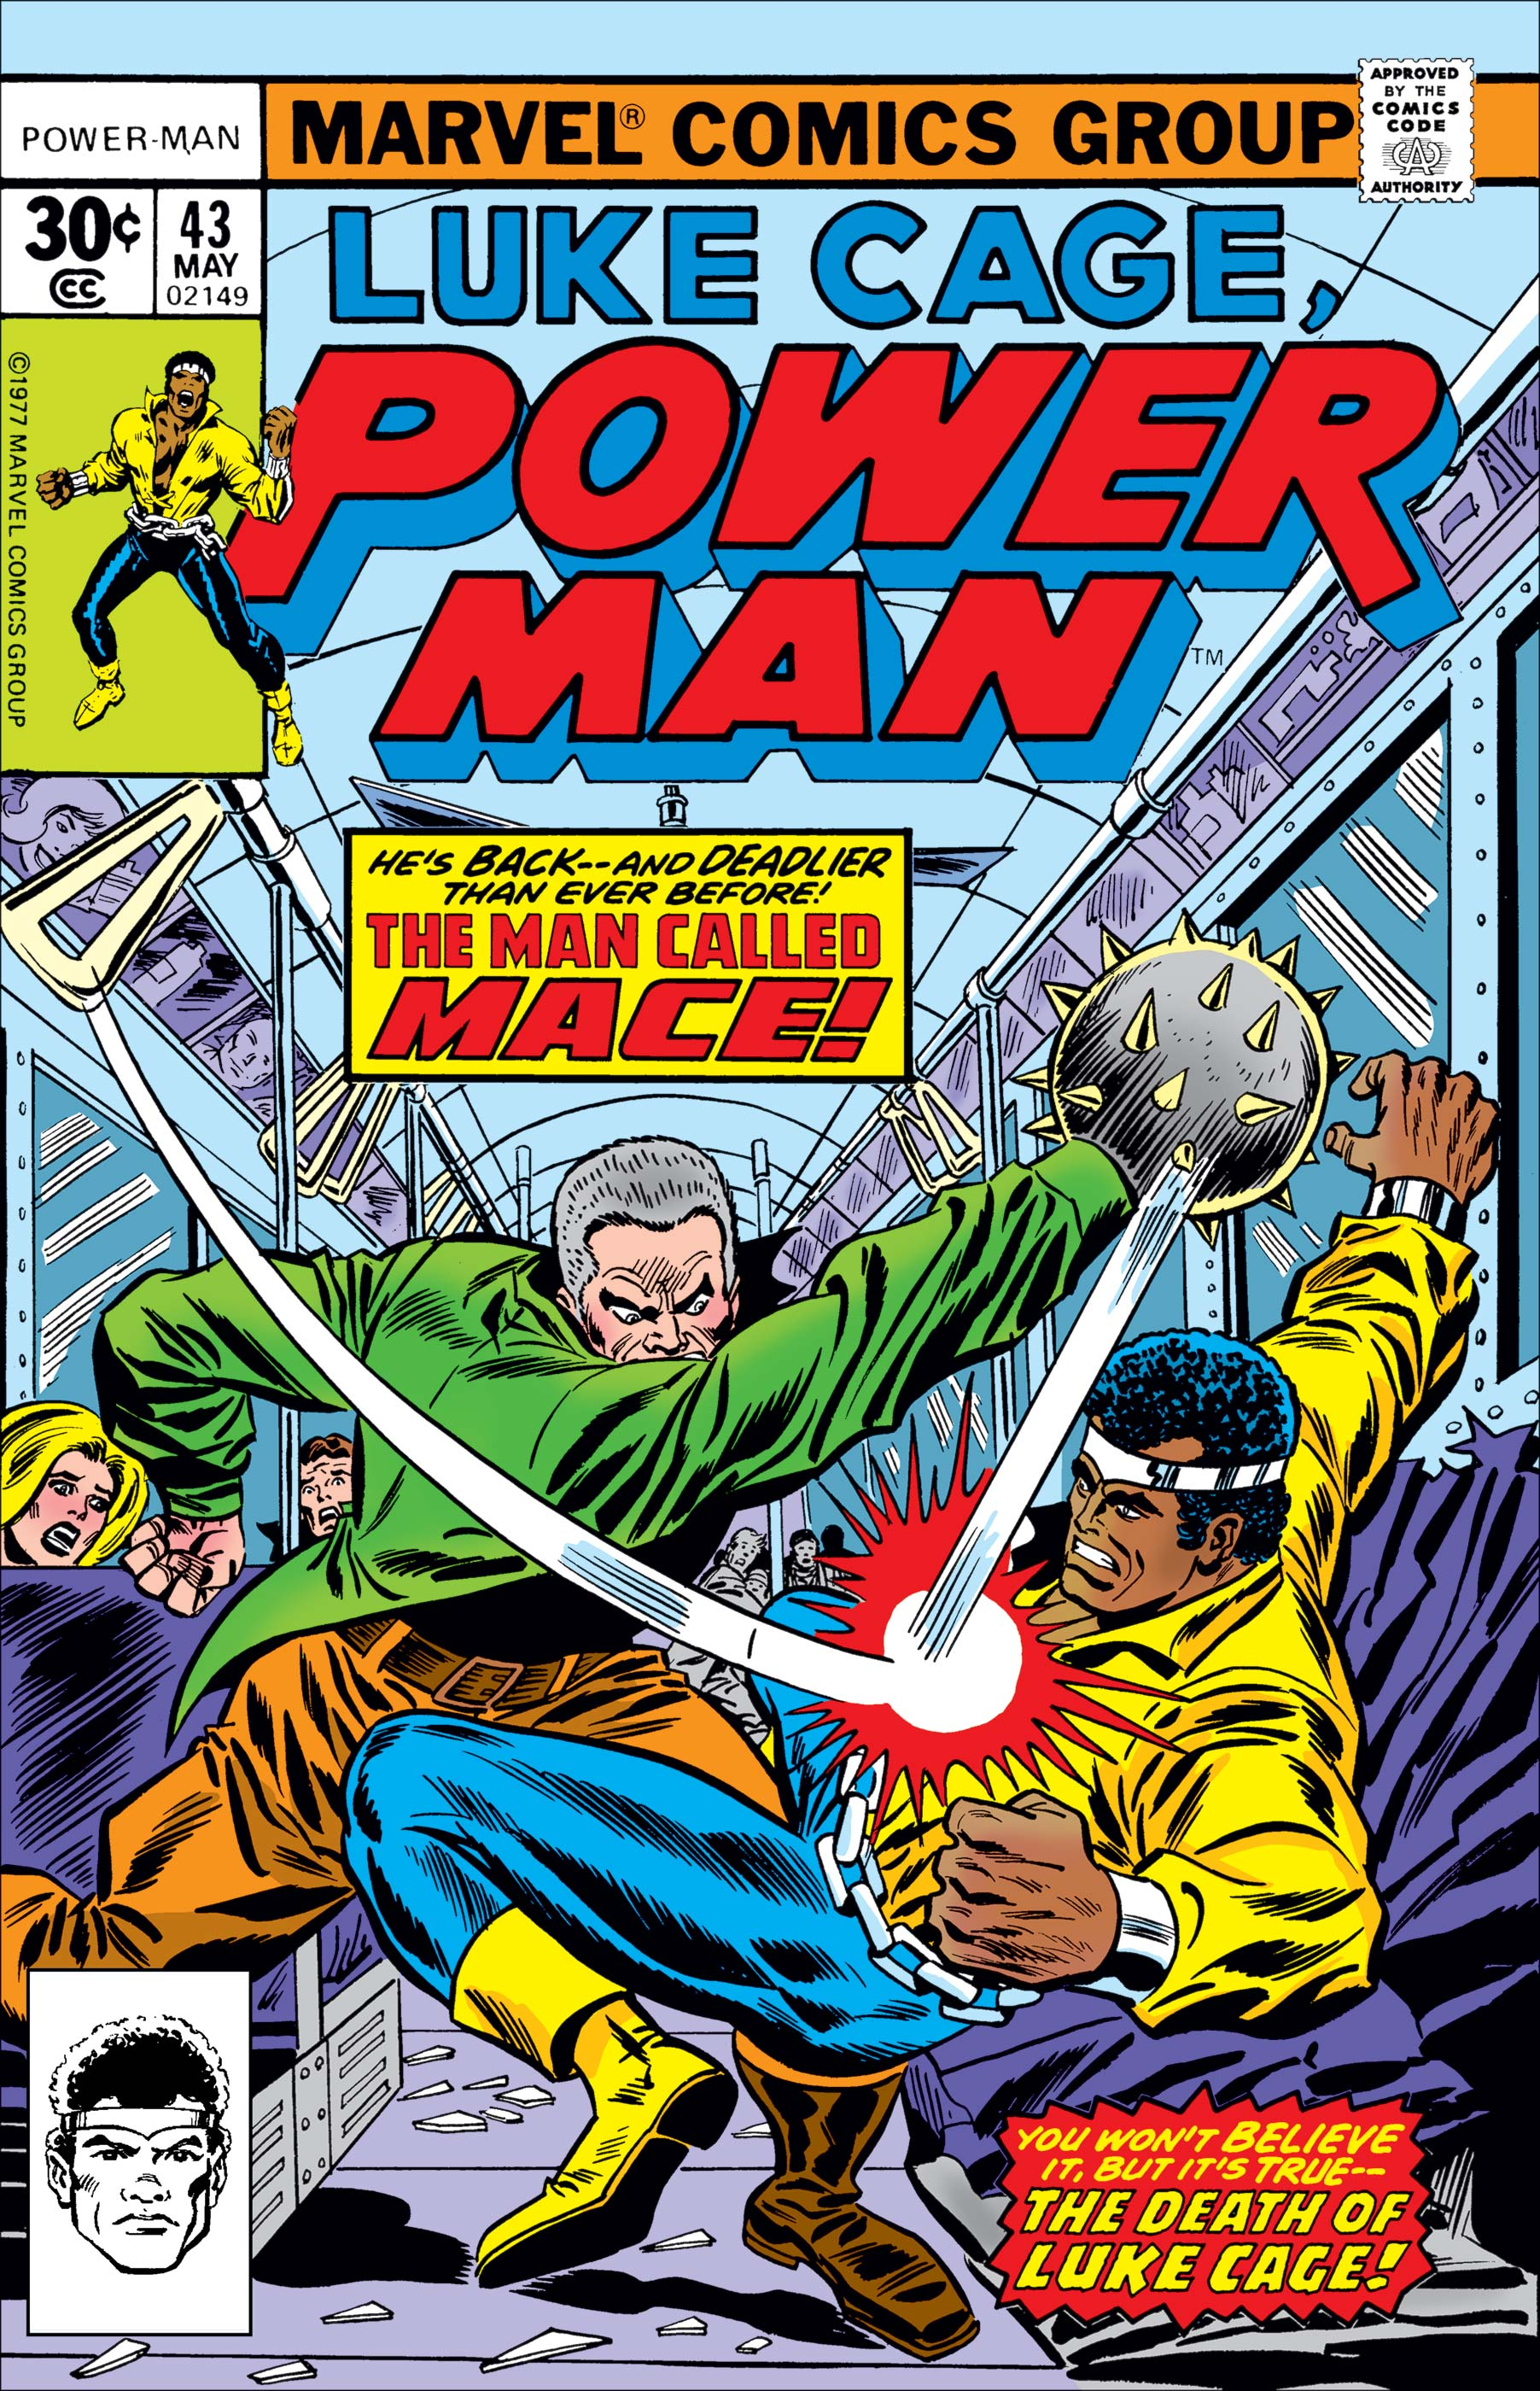 Power Man (1974) #43